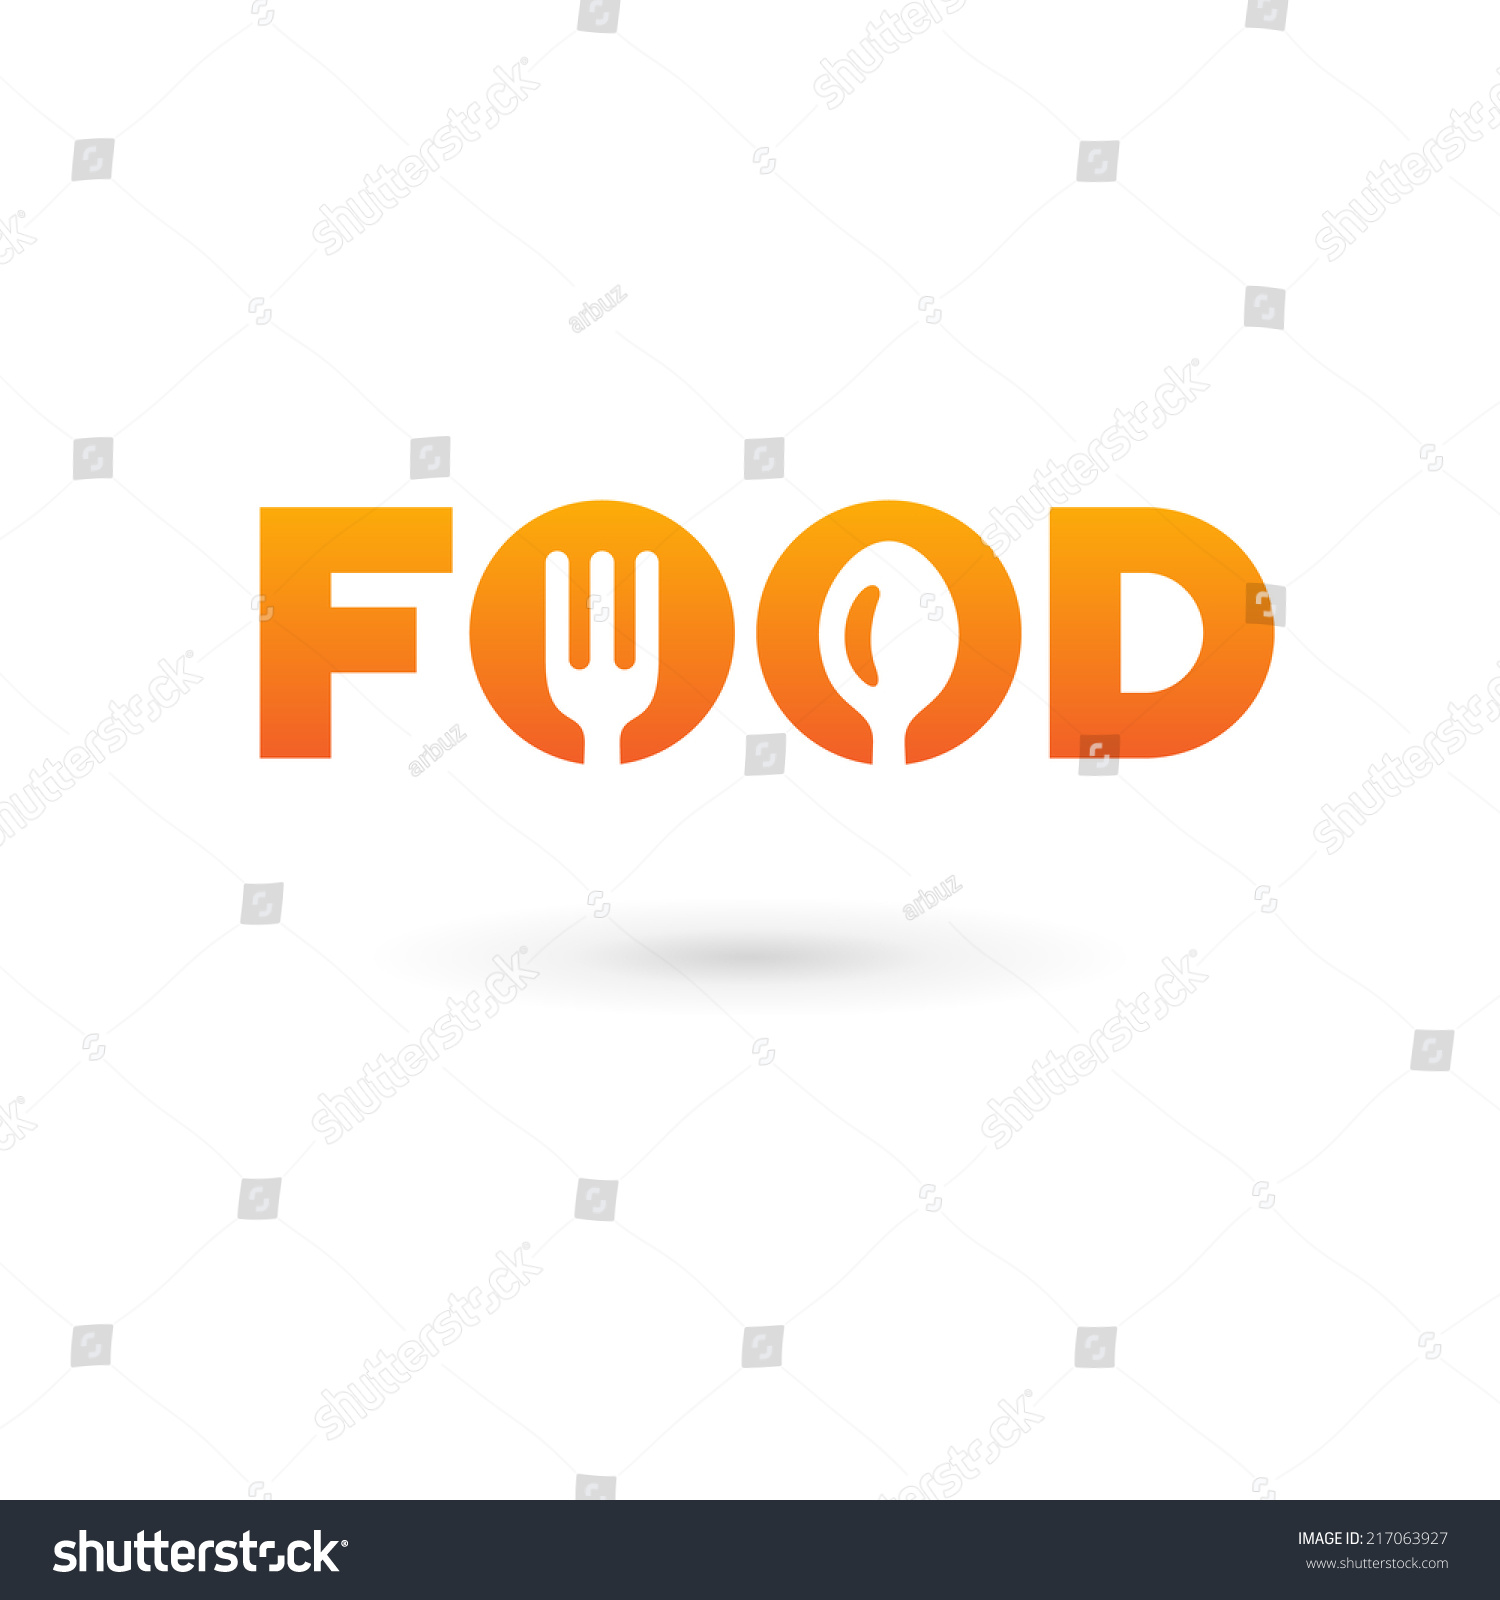 food word sign logo icon design stock vector 217063927. Black Bedroom Furniture Sets. Home Design Ideas